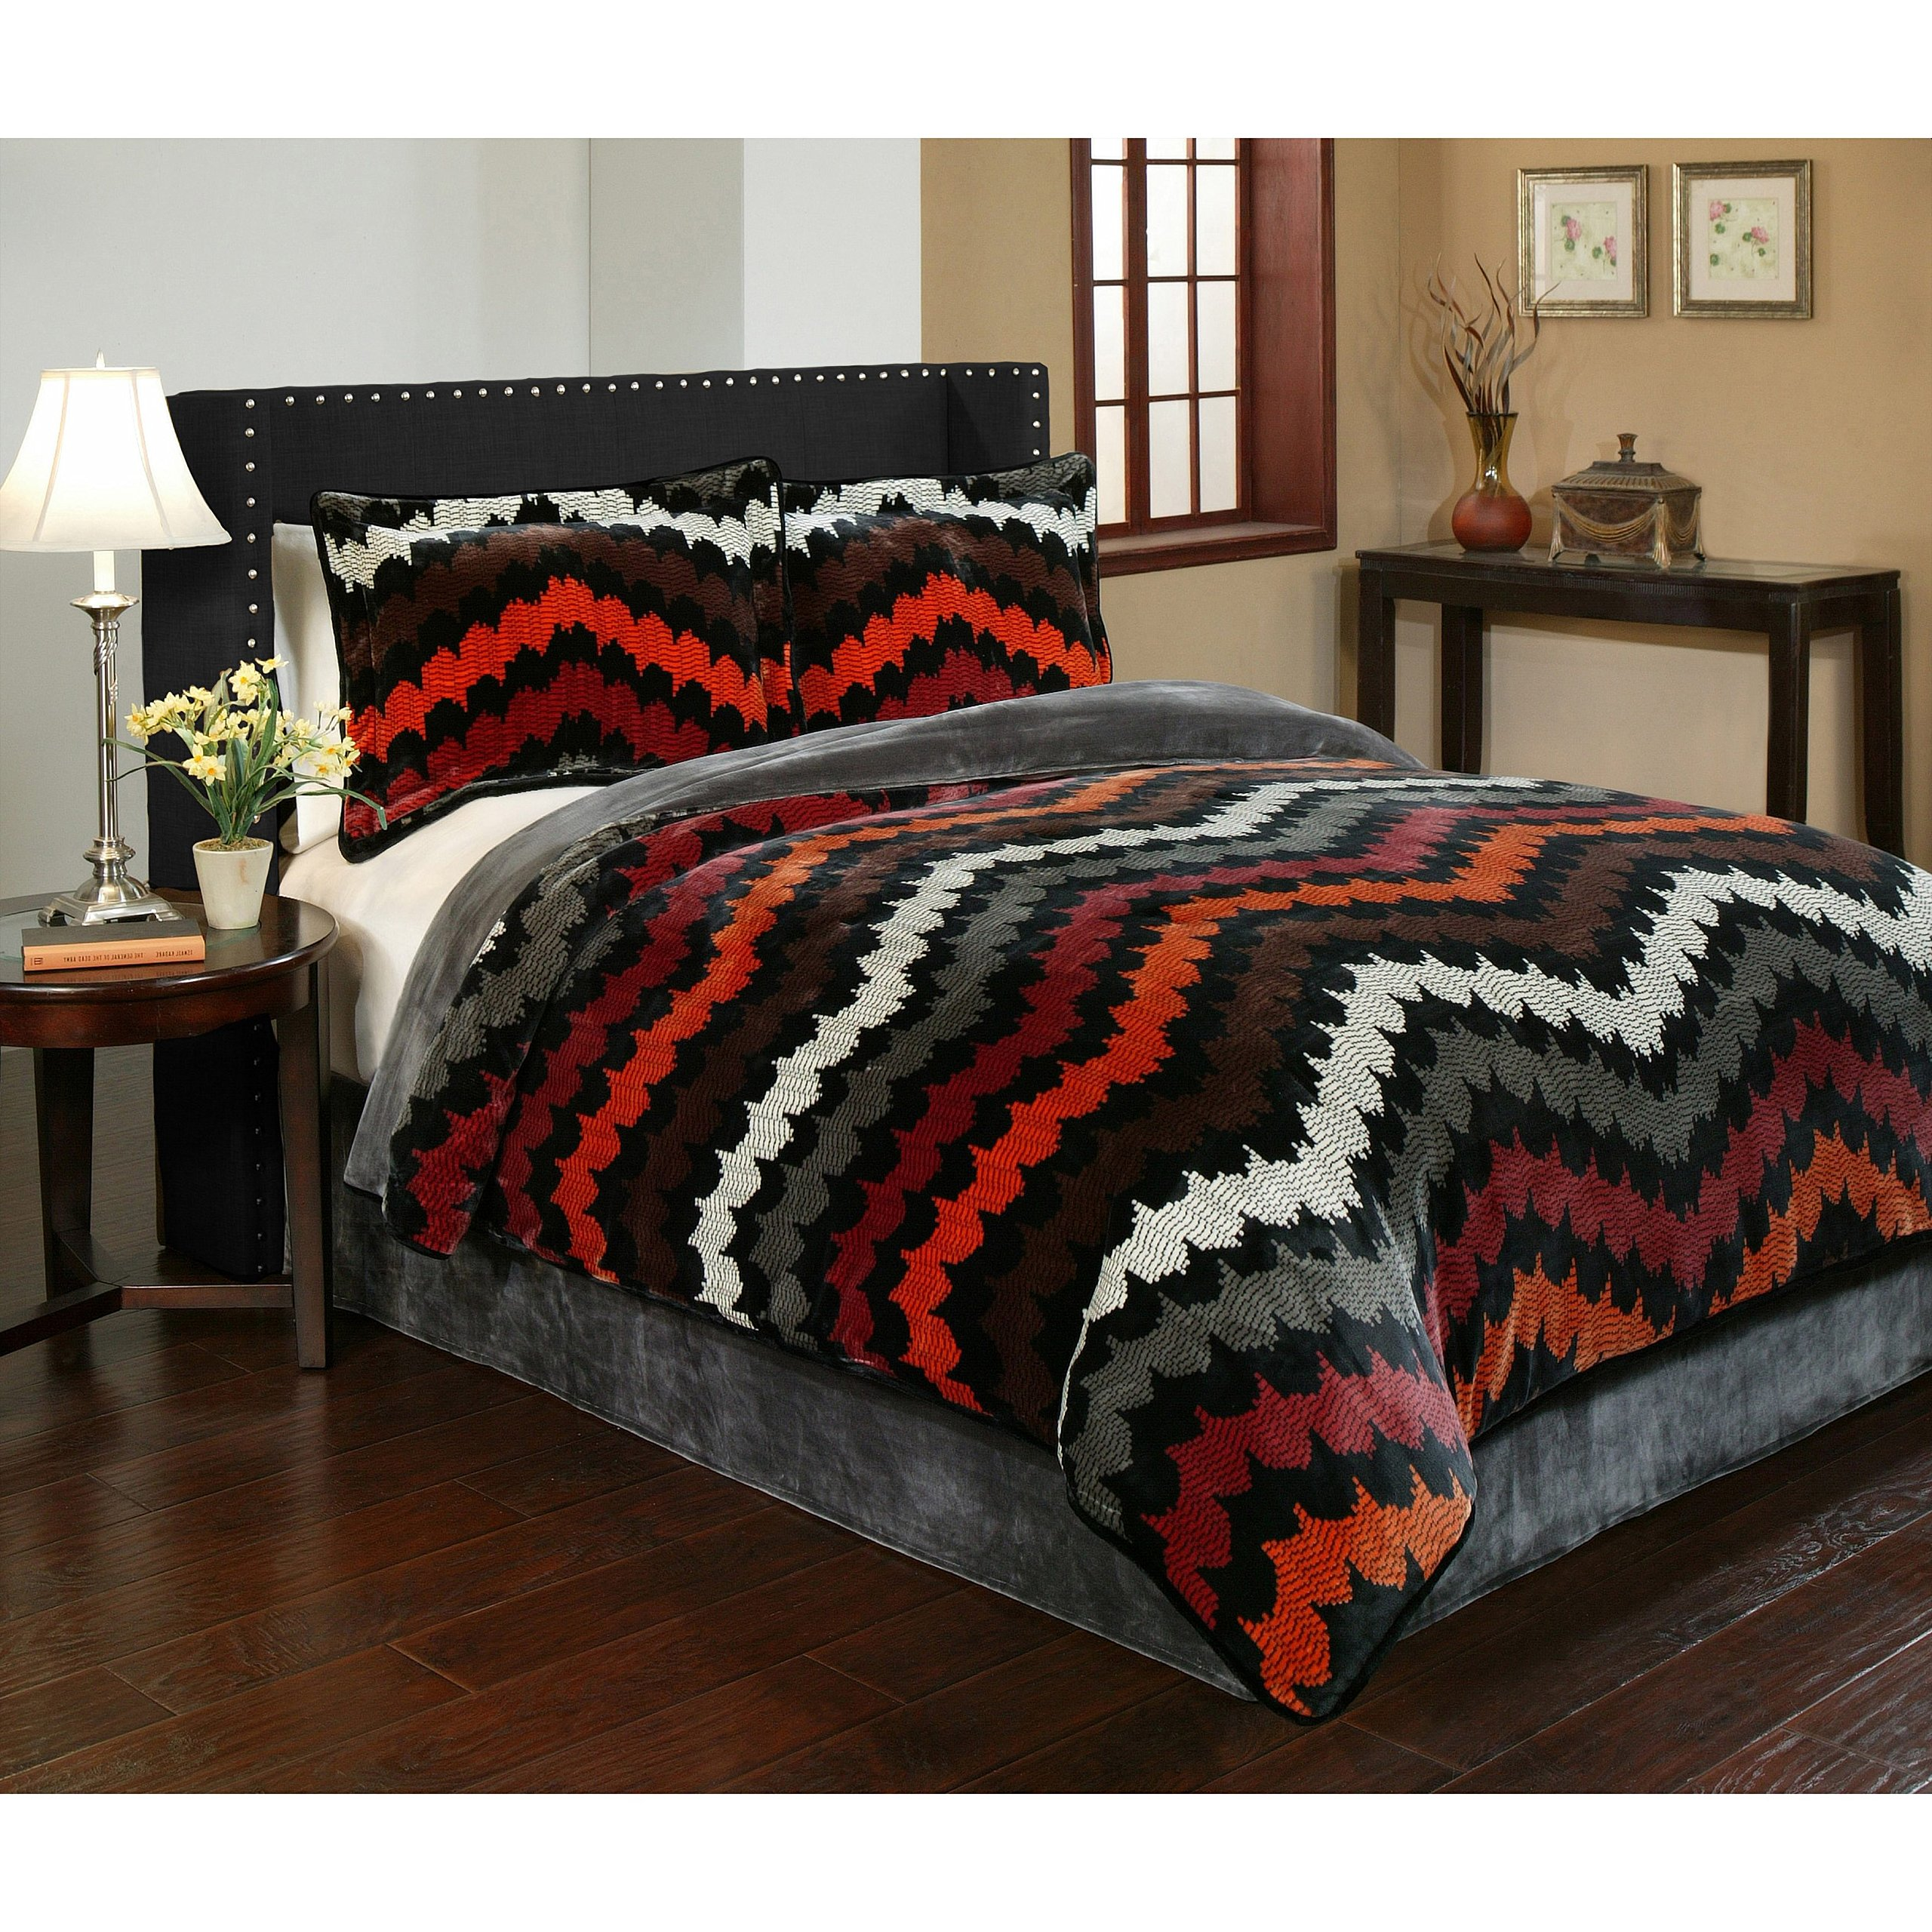 3 Piece Grey Brown Red Orange Southwest Chevron Comforter Queen Set, Multi Boho Chic Horizontal Zigzag Stripe Tribal Bedding, All Over Zig Zag Southwestern Themed Pattern Microplush Velvet Black White